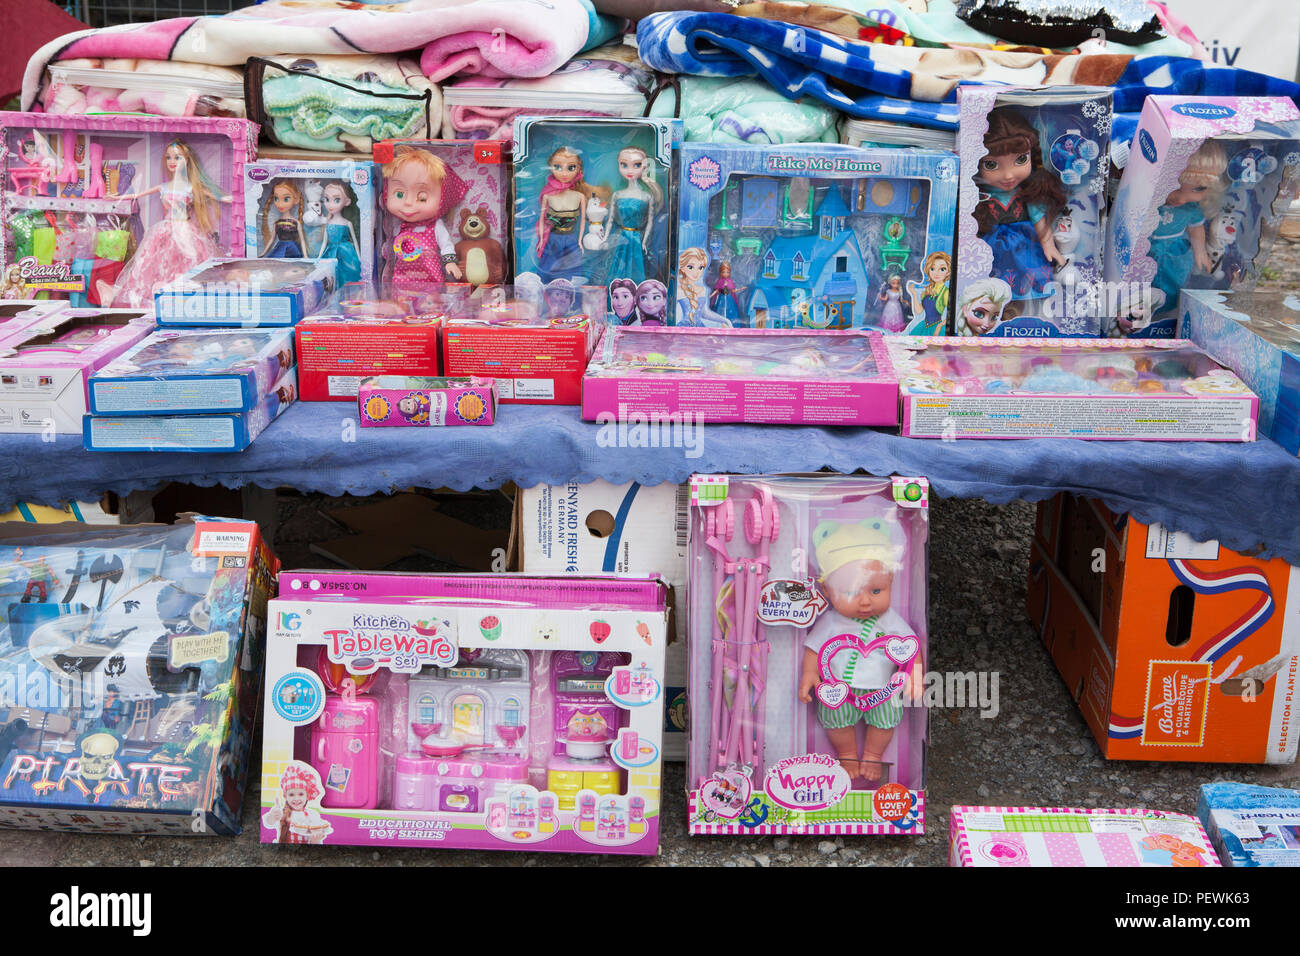 Plastic children's toys at a market stand, Germany, Europe - Stock Image